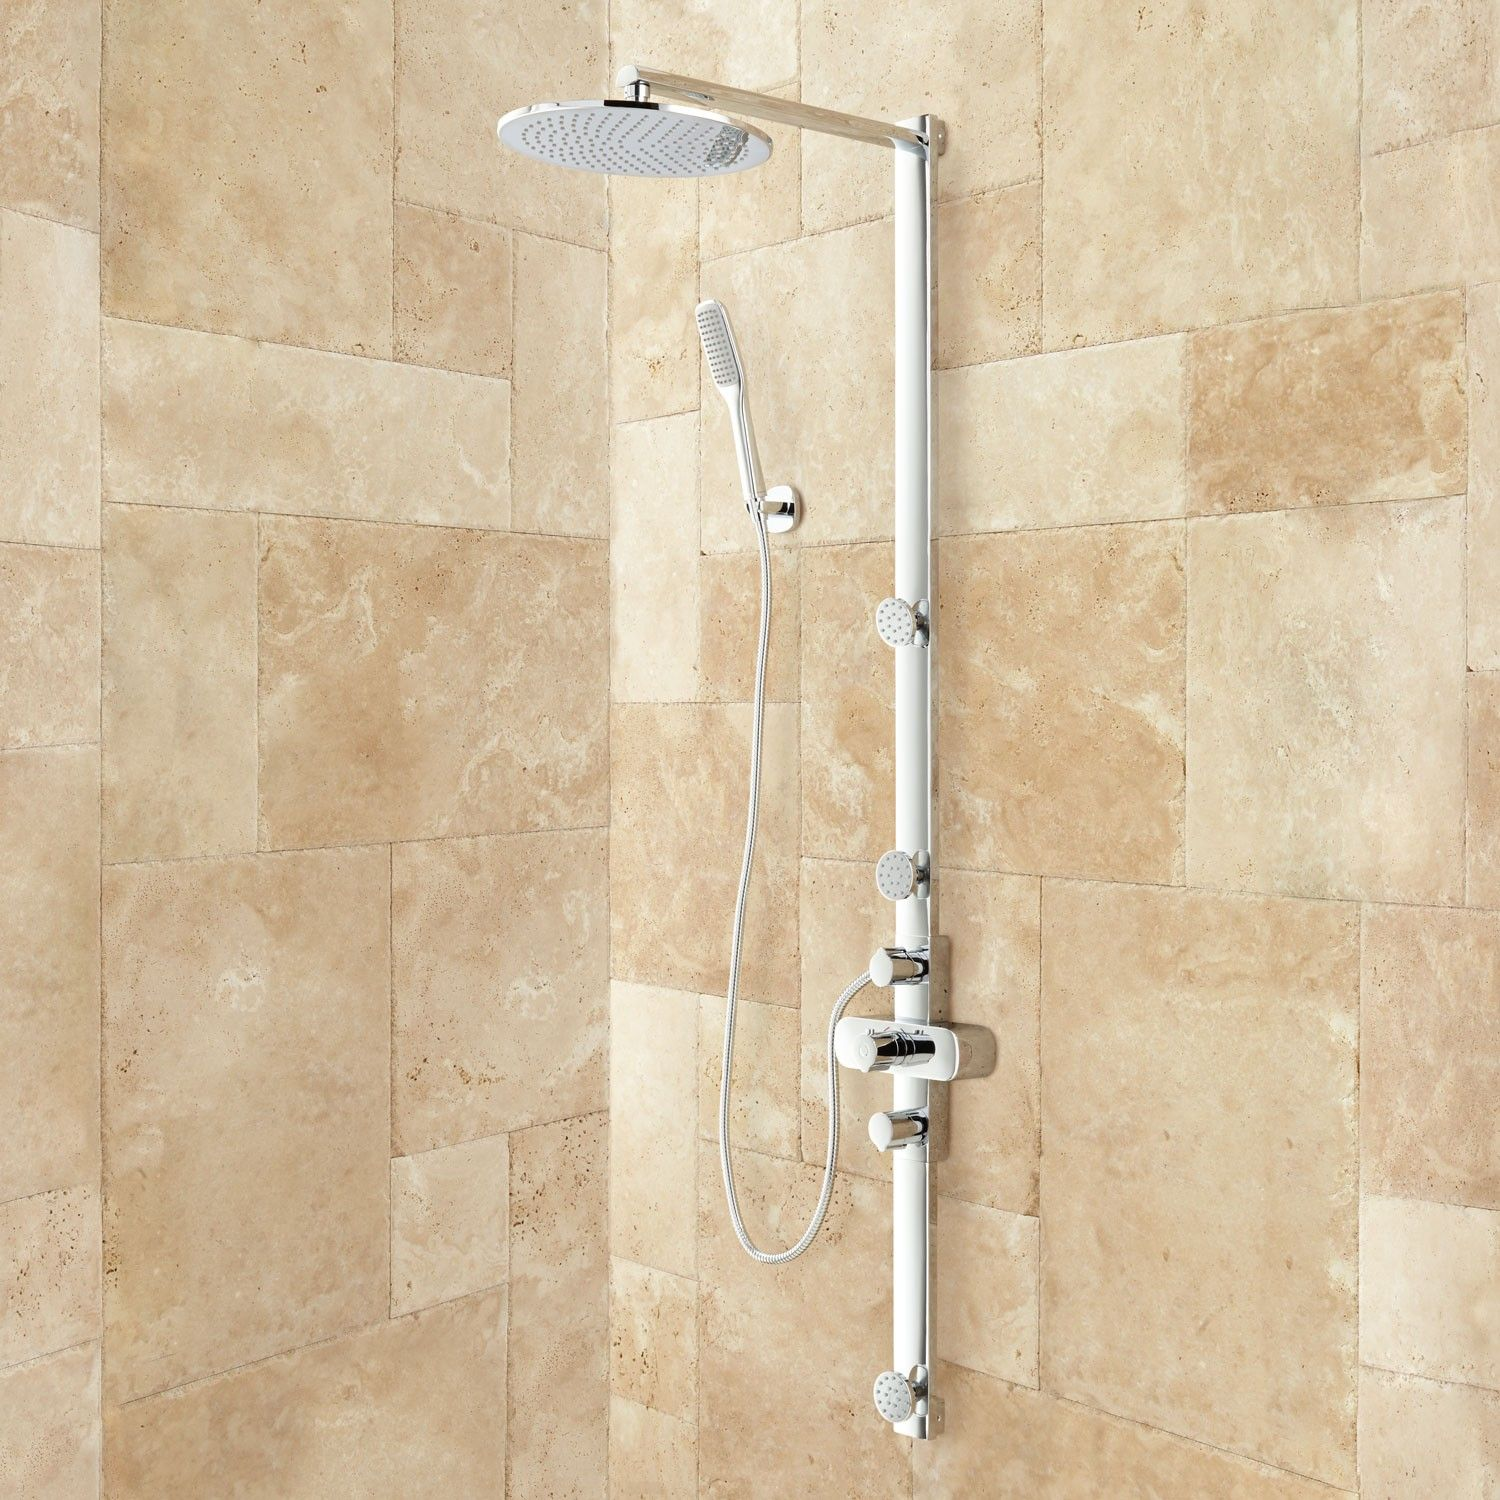 Bathroom shower pipe - Correia Exposed Pipe Shower System With Rainfall Shower Head Hand Shower